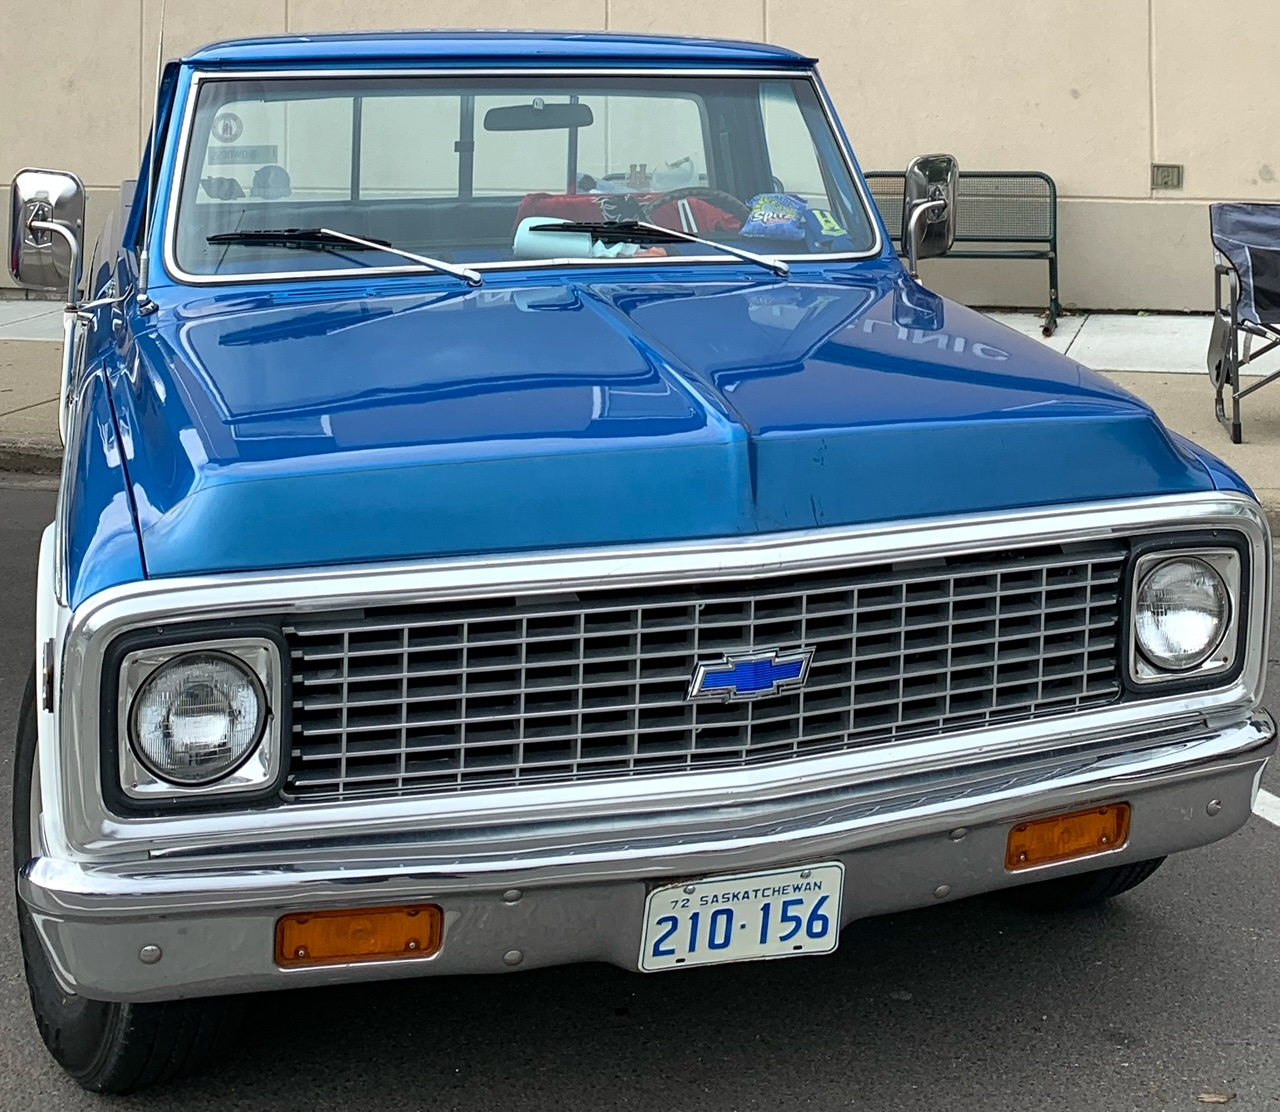 2019-image-72-Chev-Camper-Special-at-car-show